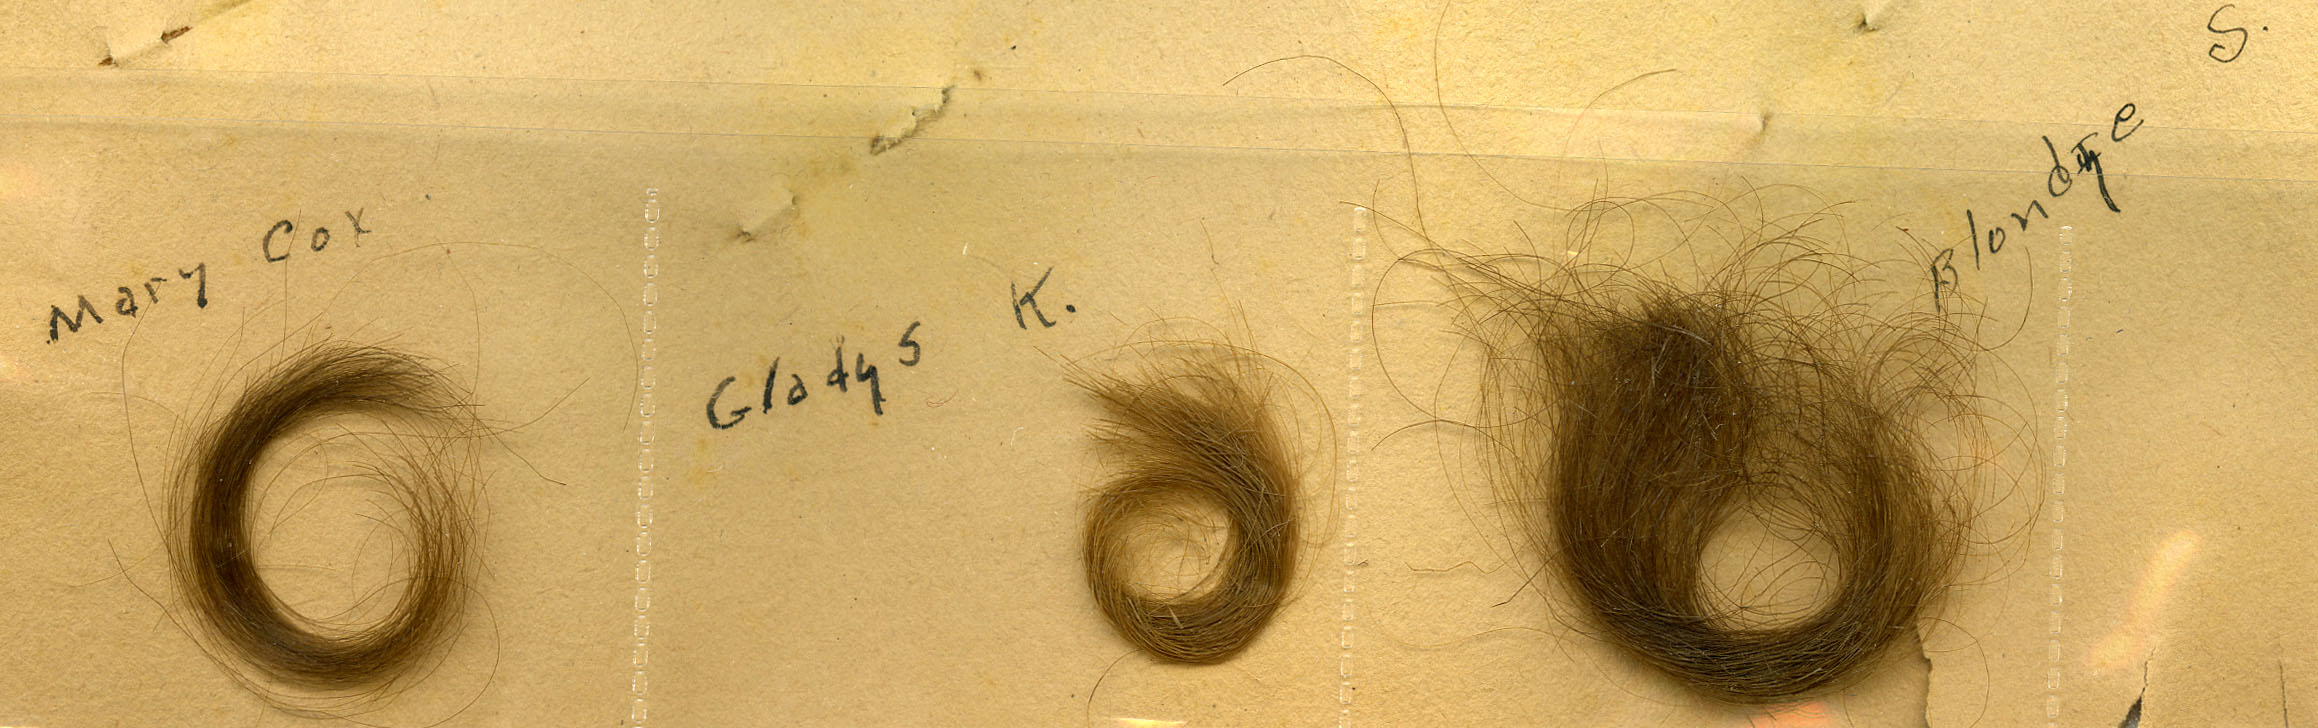 The scrapbook of Frank C. Kitts Jr., who perhaps considered himself something of a Lothario, contains locks of hair from three different women.